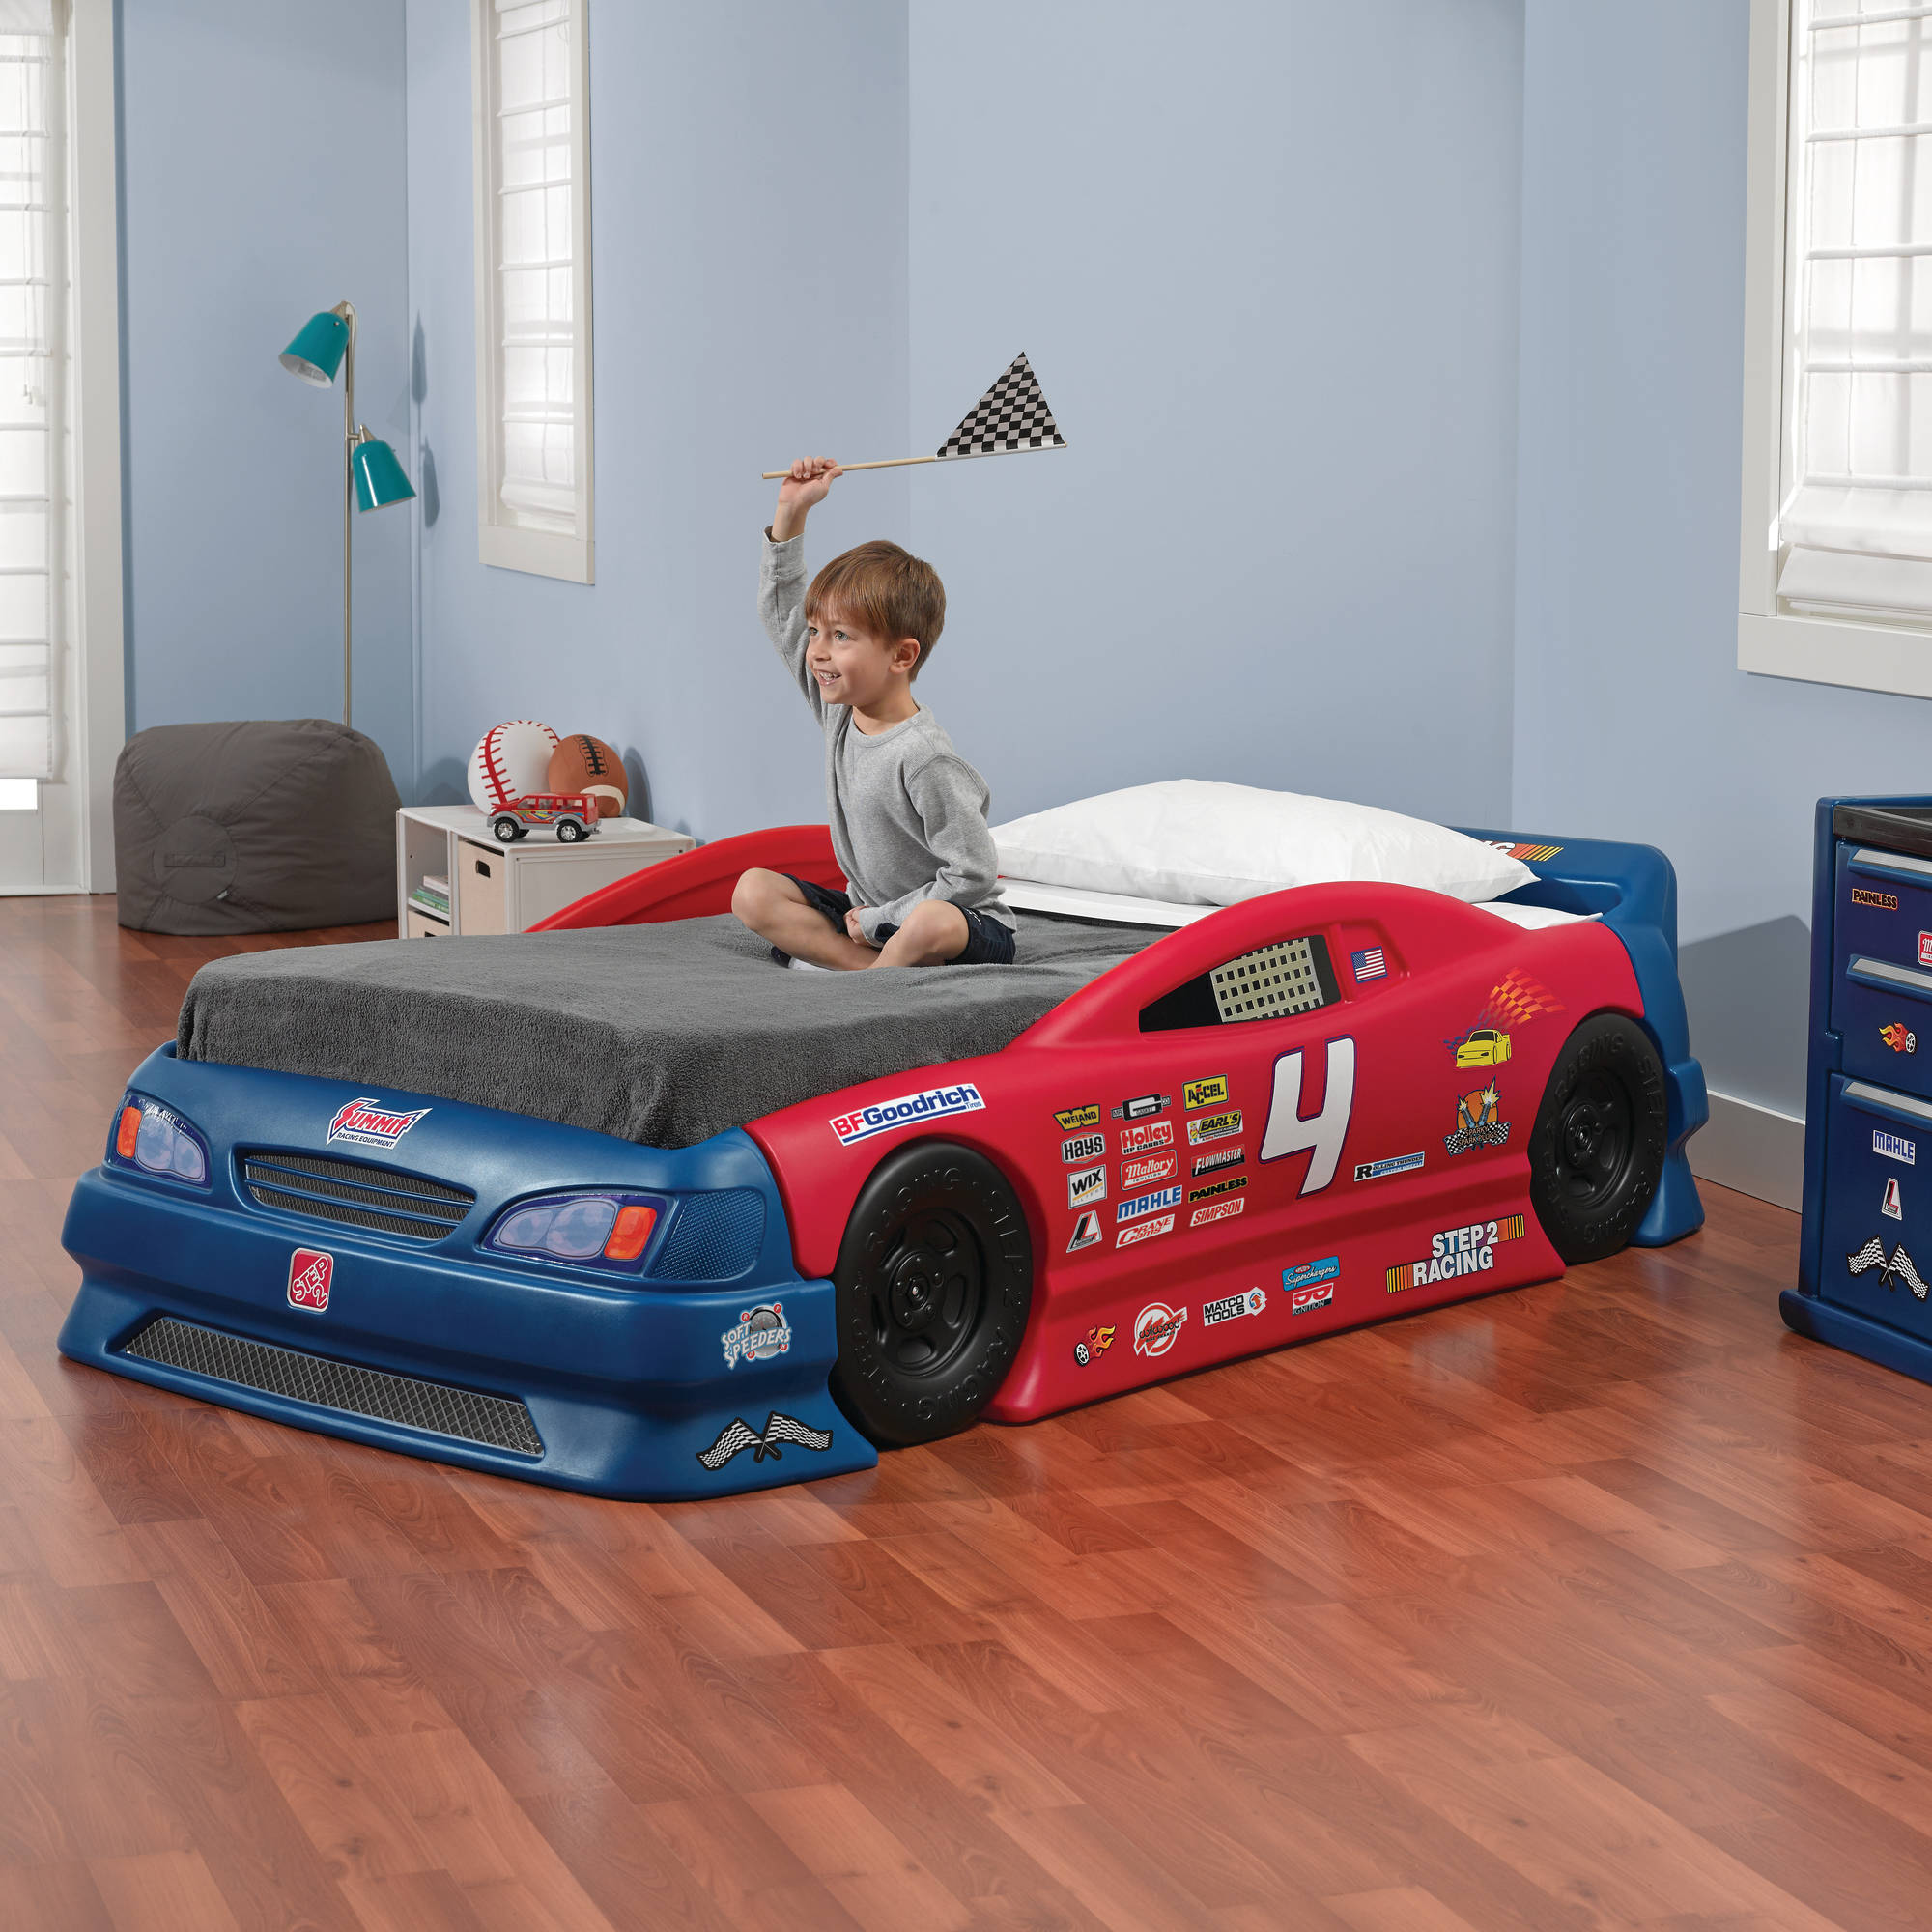 Car beds for boys twin - Car Beds For Boys Twin 9